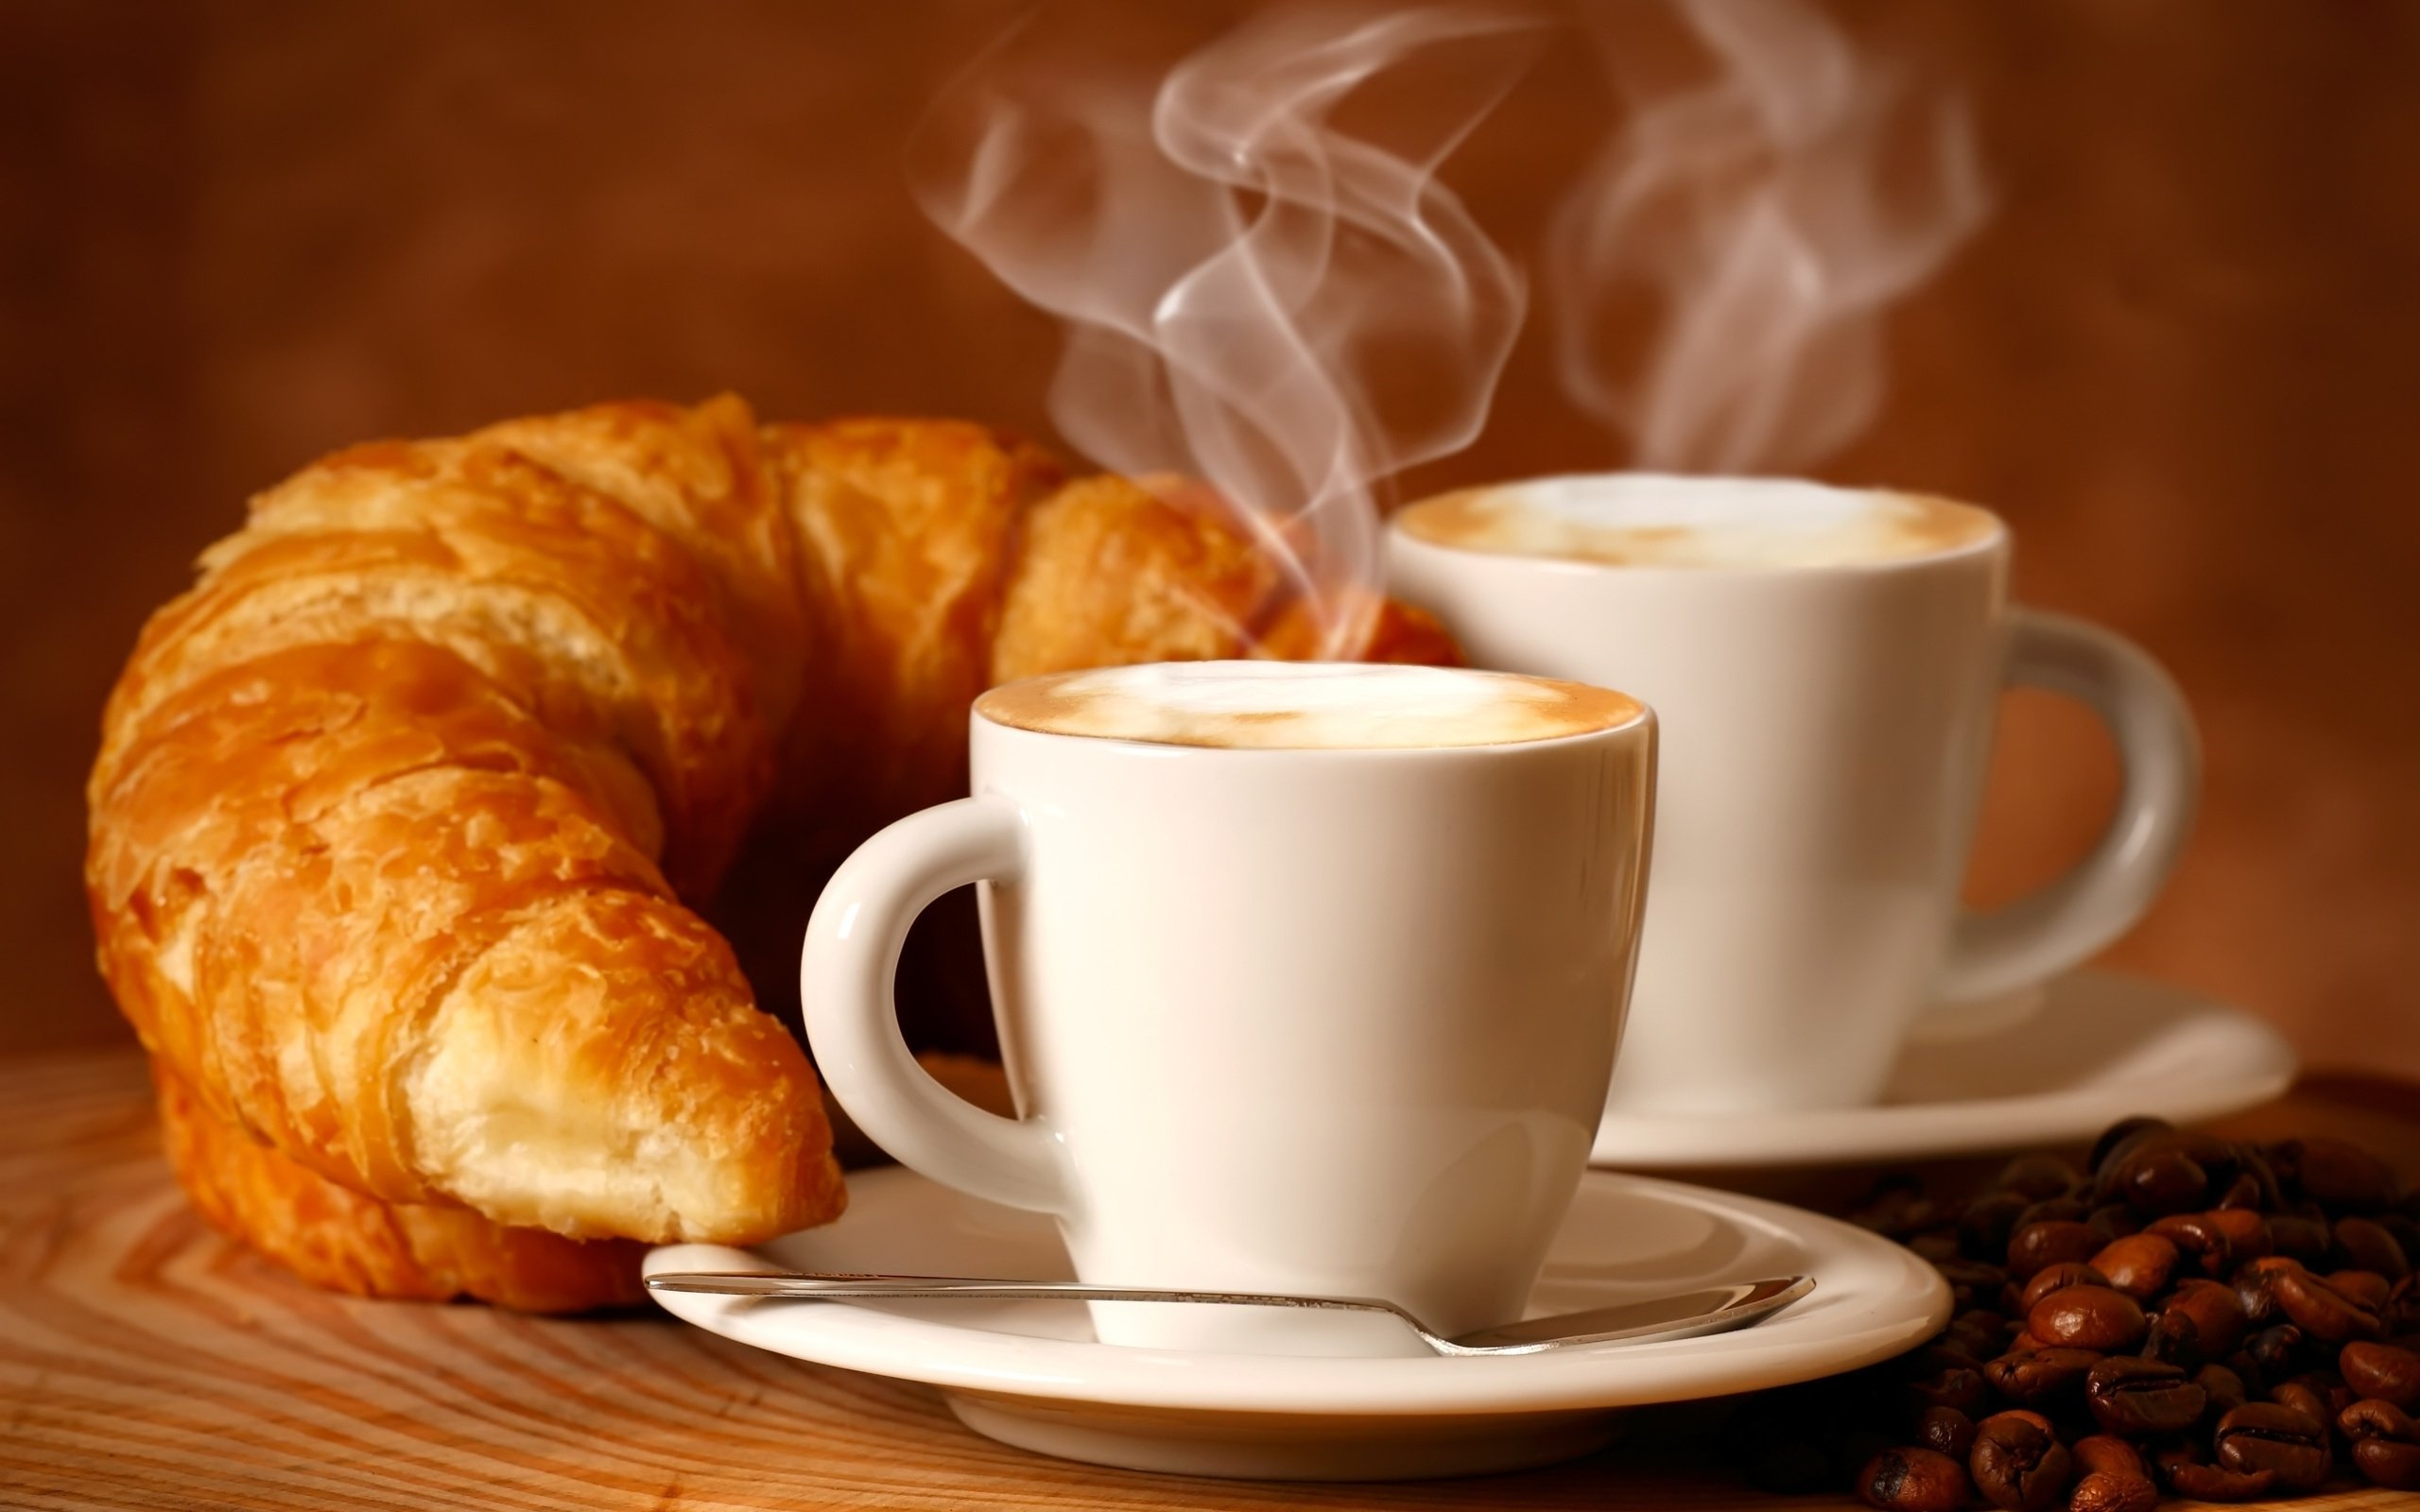 Cappuccino Bilder 4k Croissants Wallpapers High Quality | Download Free